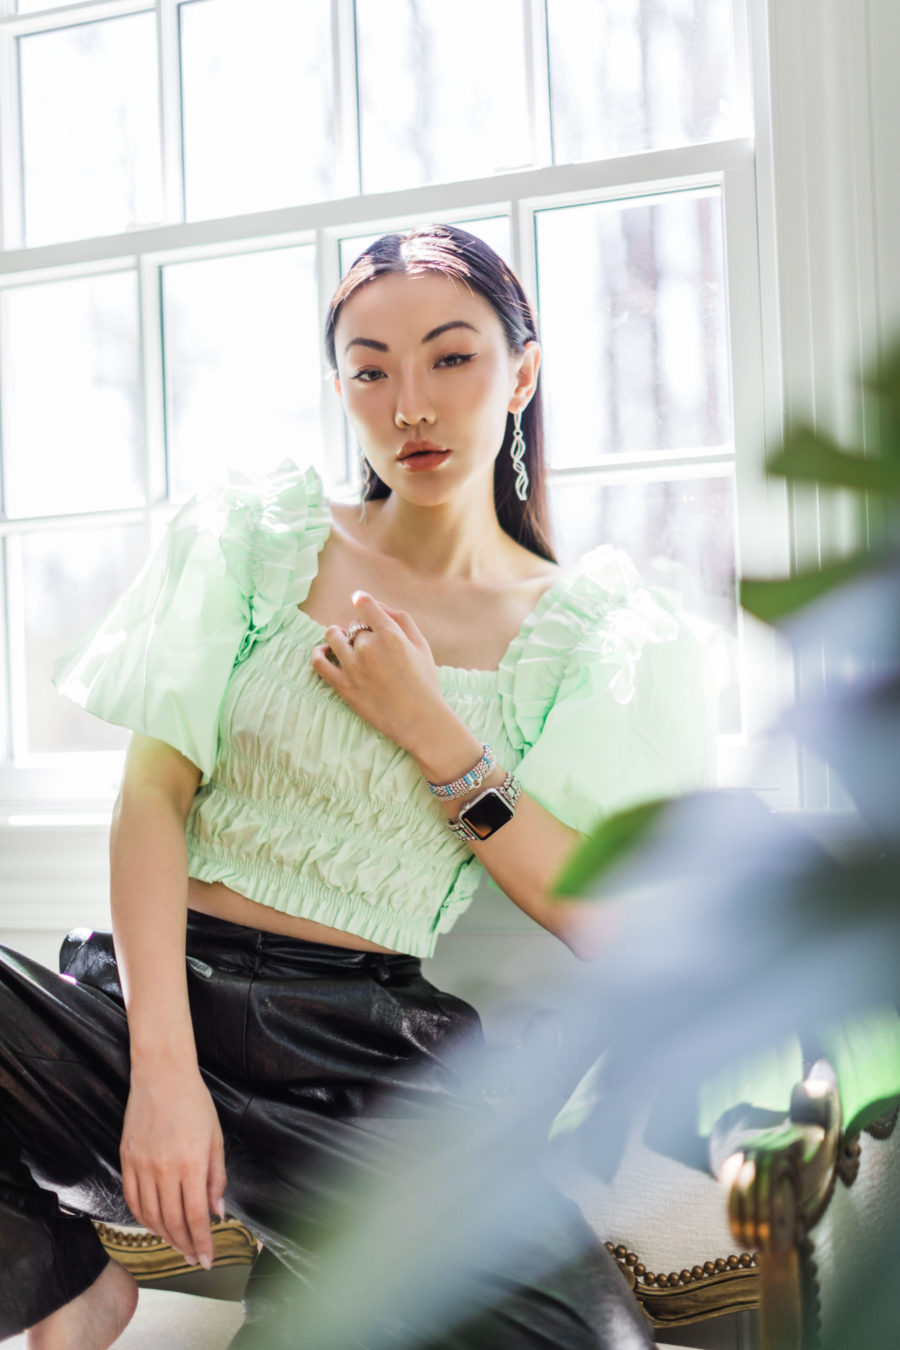 jessica wang spring outfits featuring a green puff sleeve top and leather pants // Jessica Wang - Notjessfashion.com